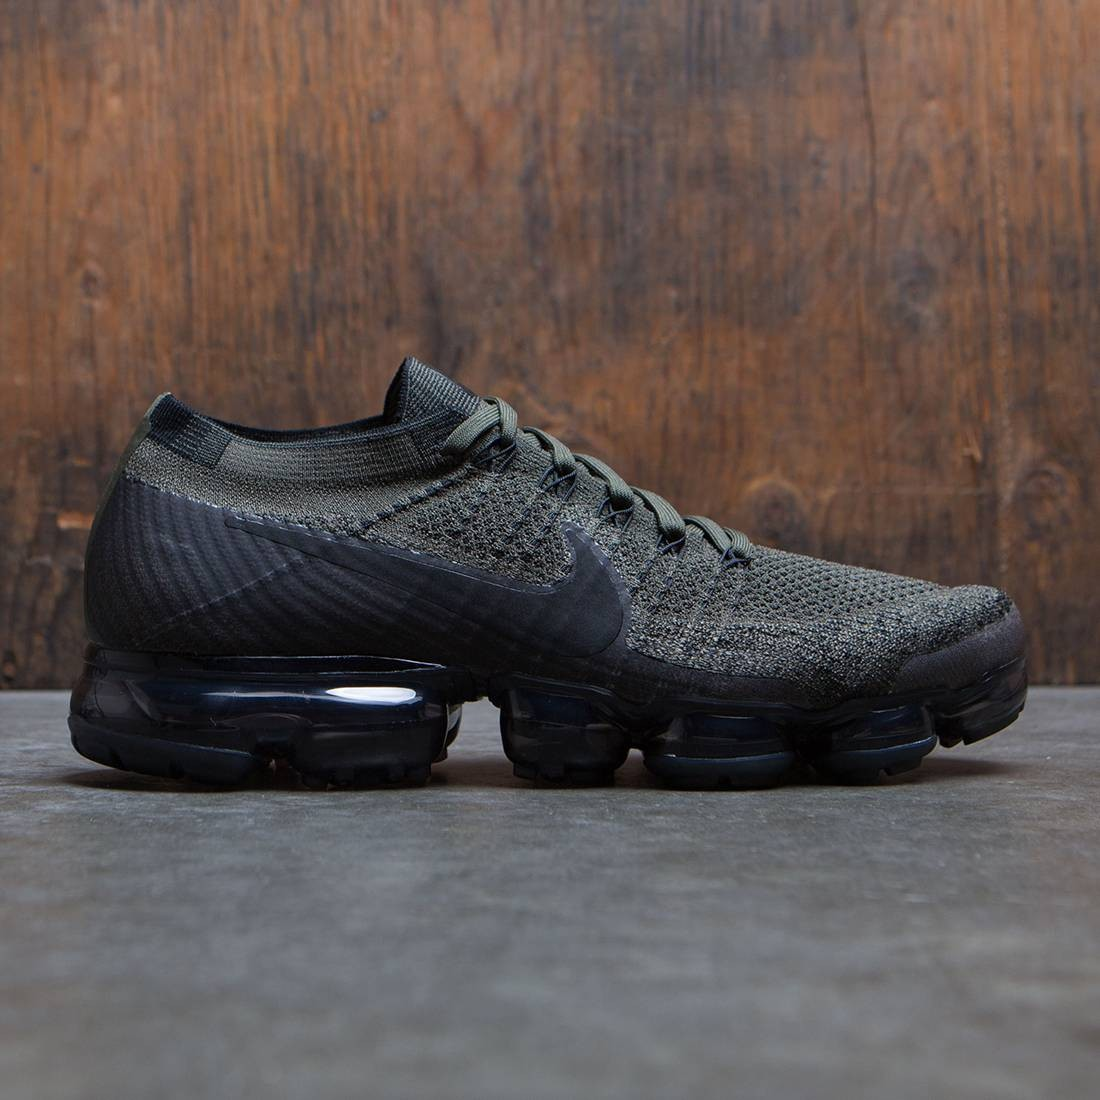 pretty nice 3ec24 2d1ac Nike Men Air Vapormax Flyknit Running (cargo khaki / black-medium  olive-dark grey)